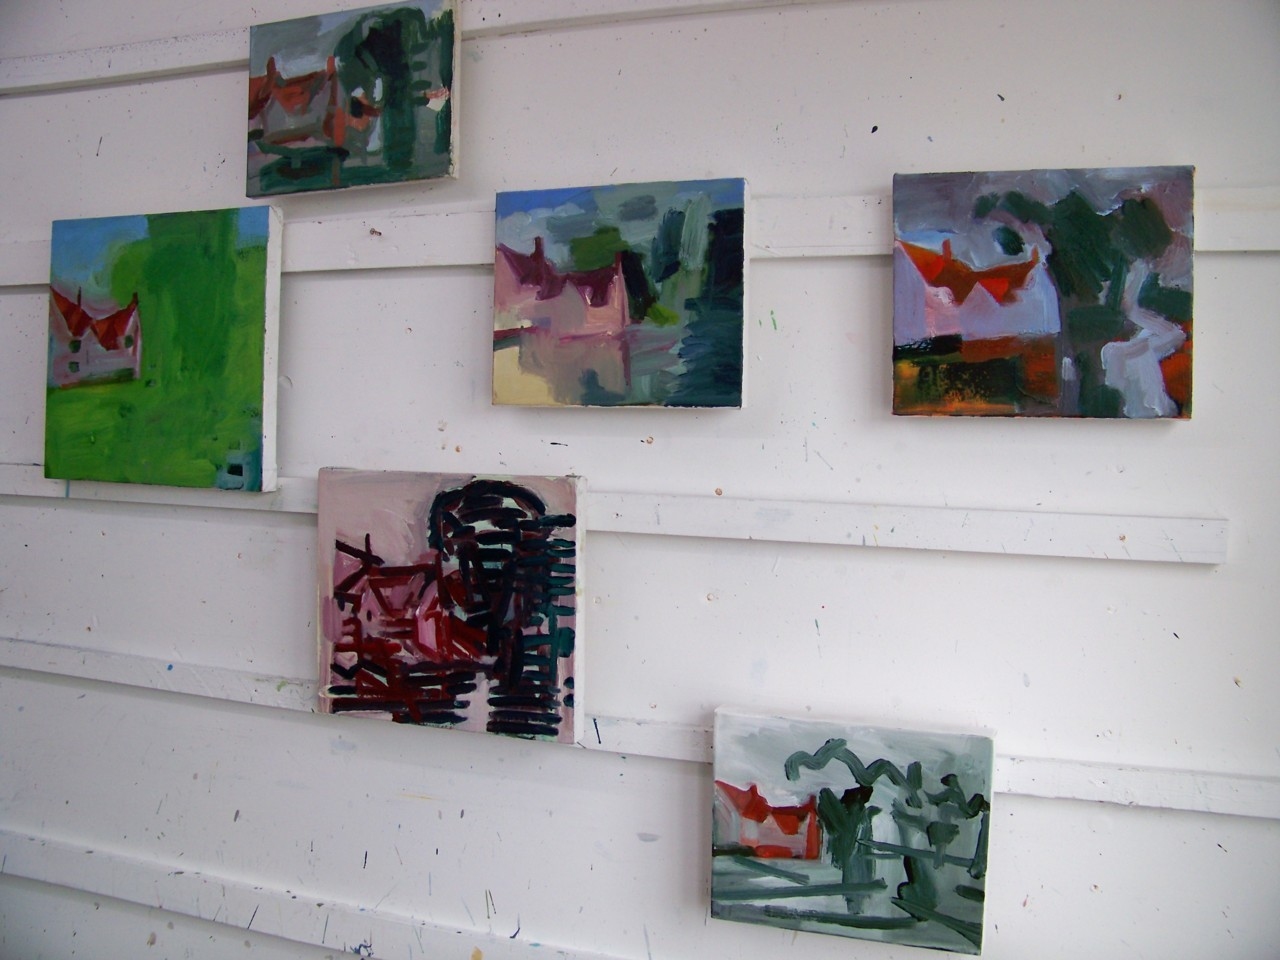 17th April 2012. I have been sorting out some small paintings based on Constable for exhibition at Flatford in the summer.